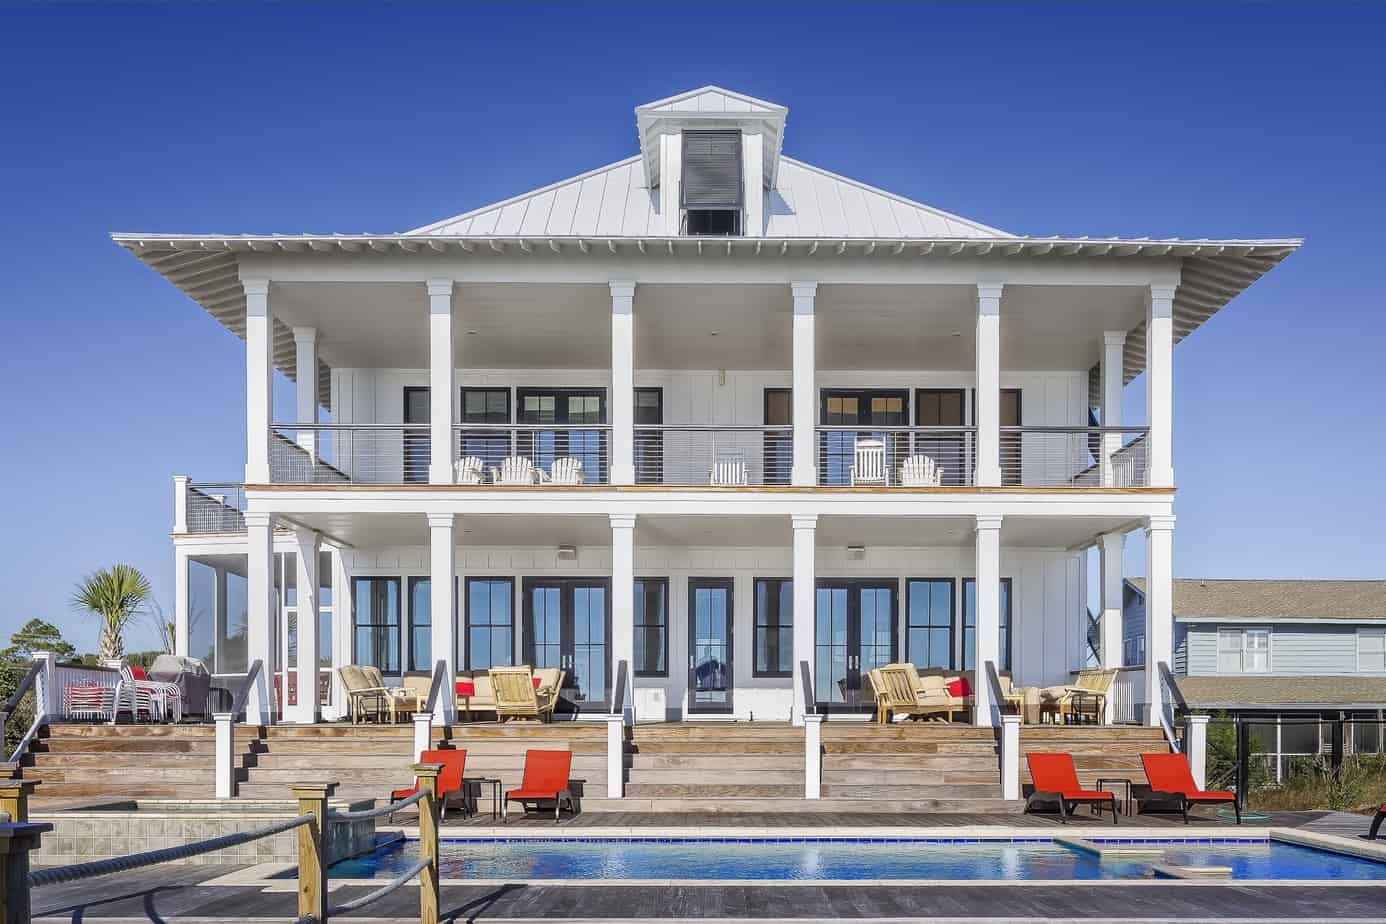 Largo Two story beach house with pool, double porch, and tin roof